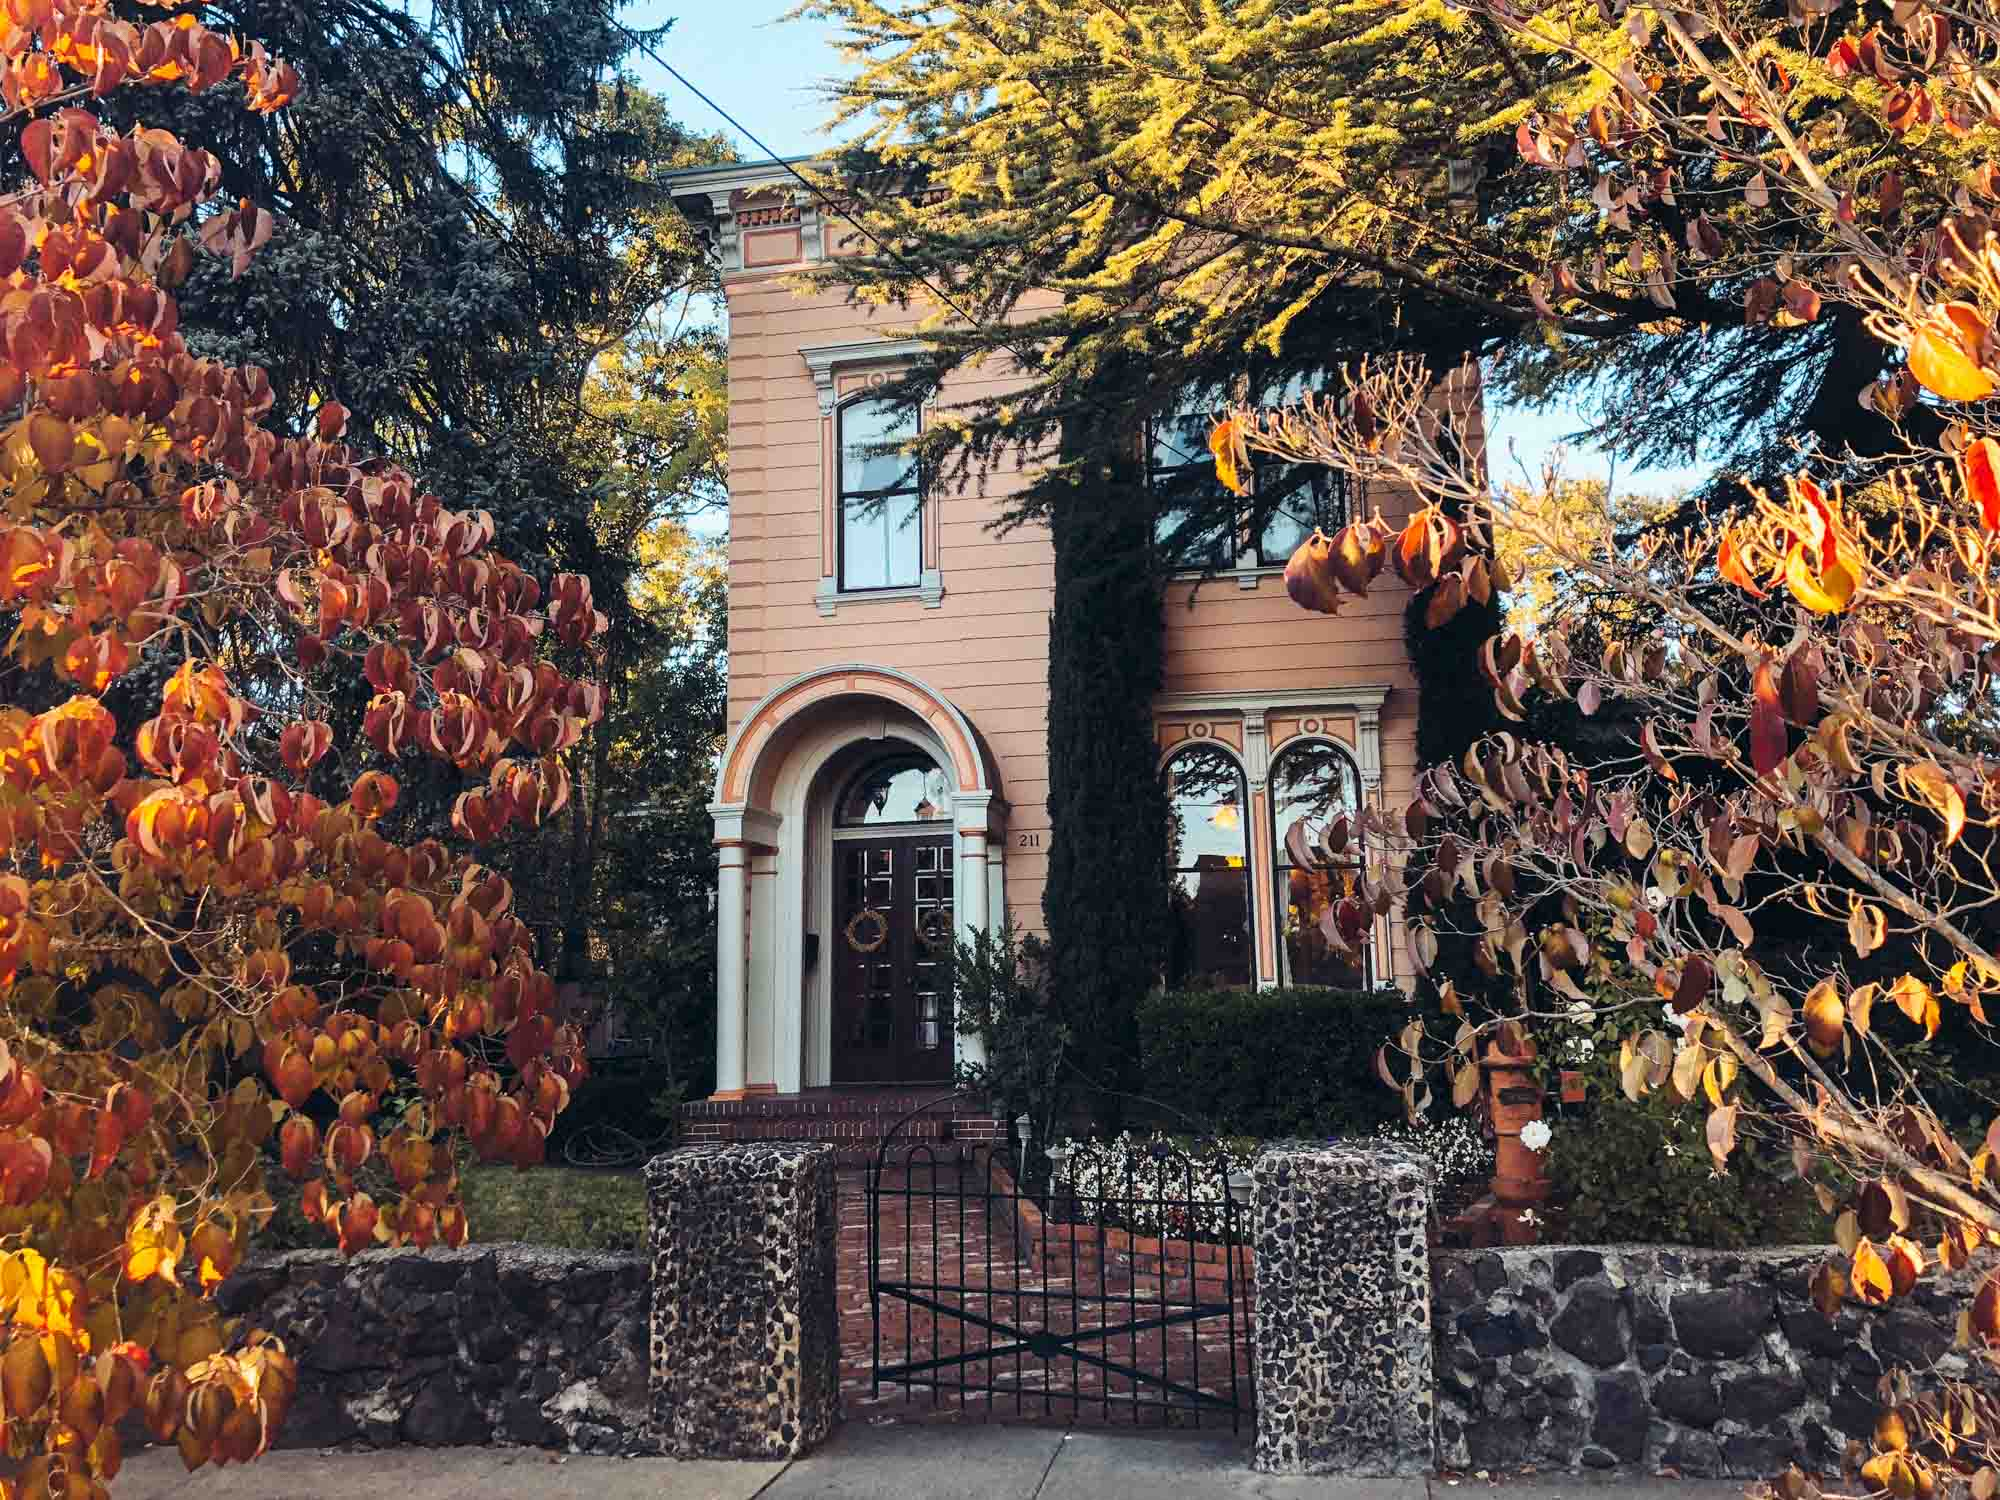 Places to stay in Sonoma: Camellia Inn, Sonooma